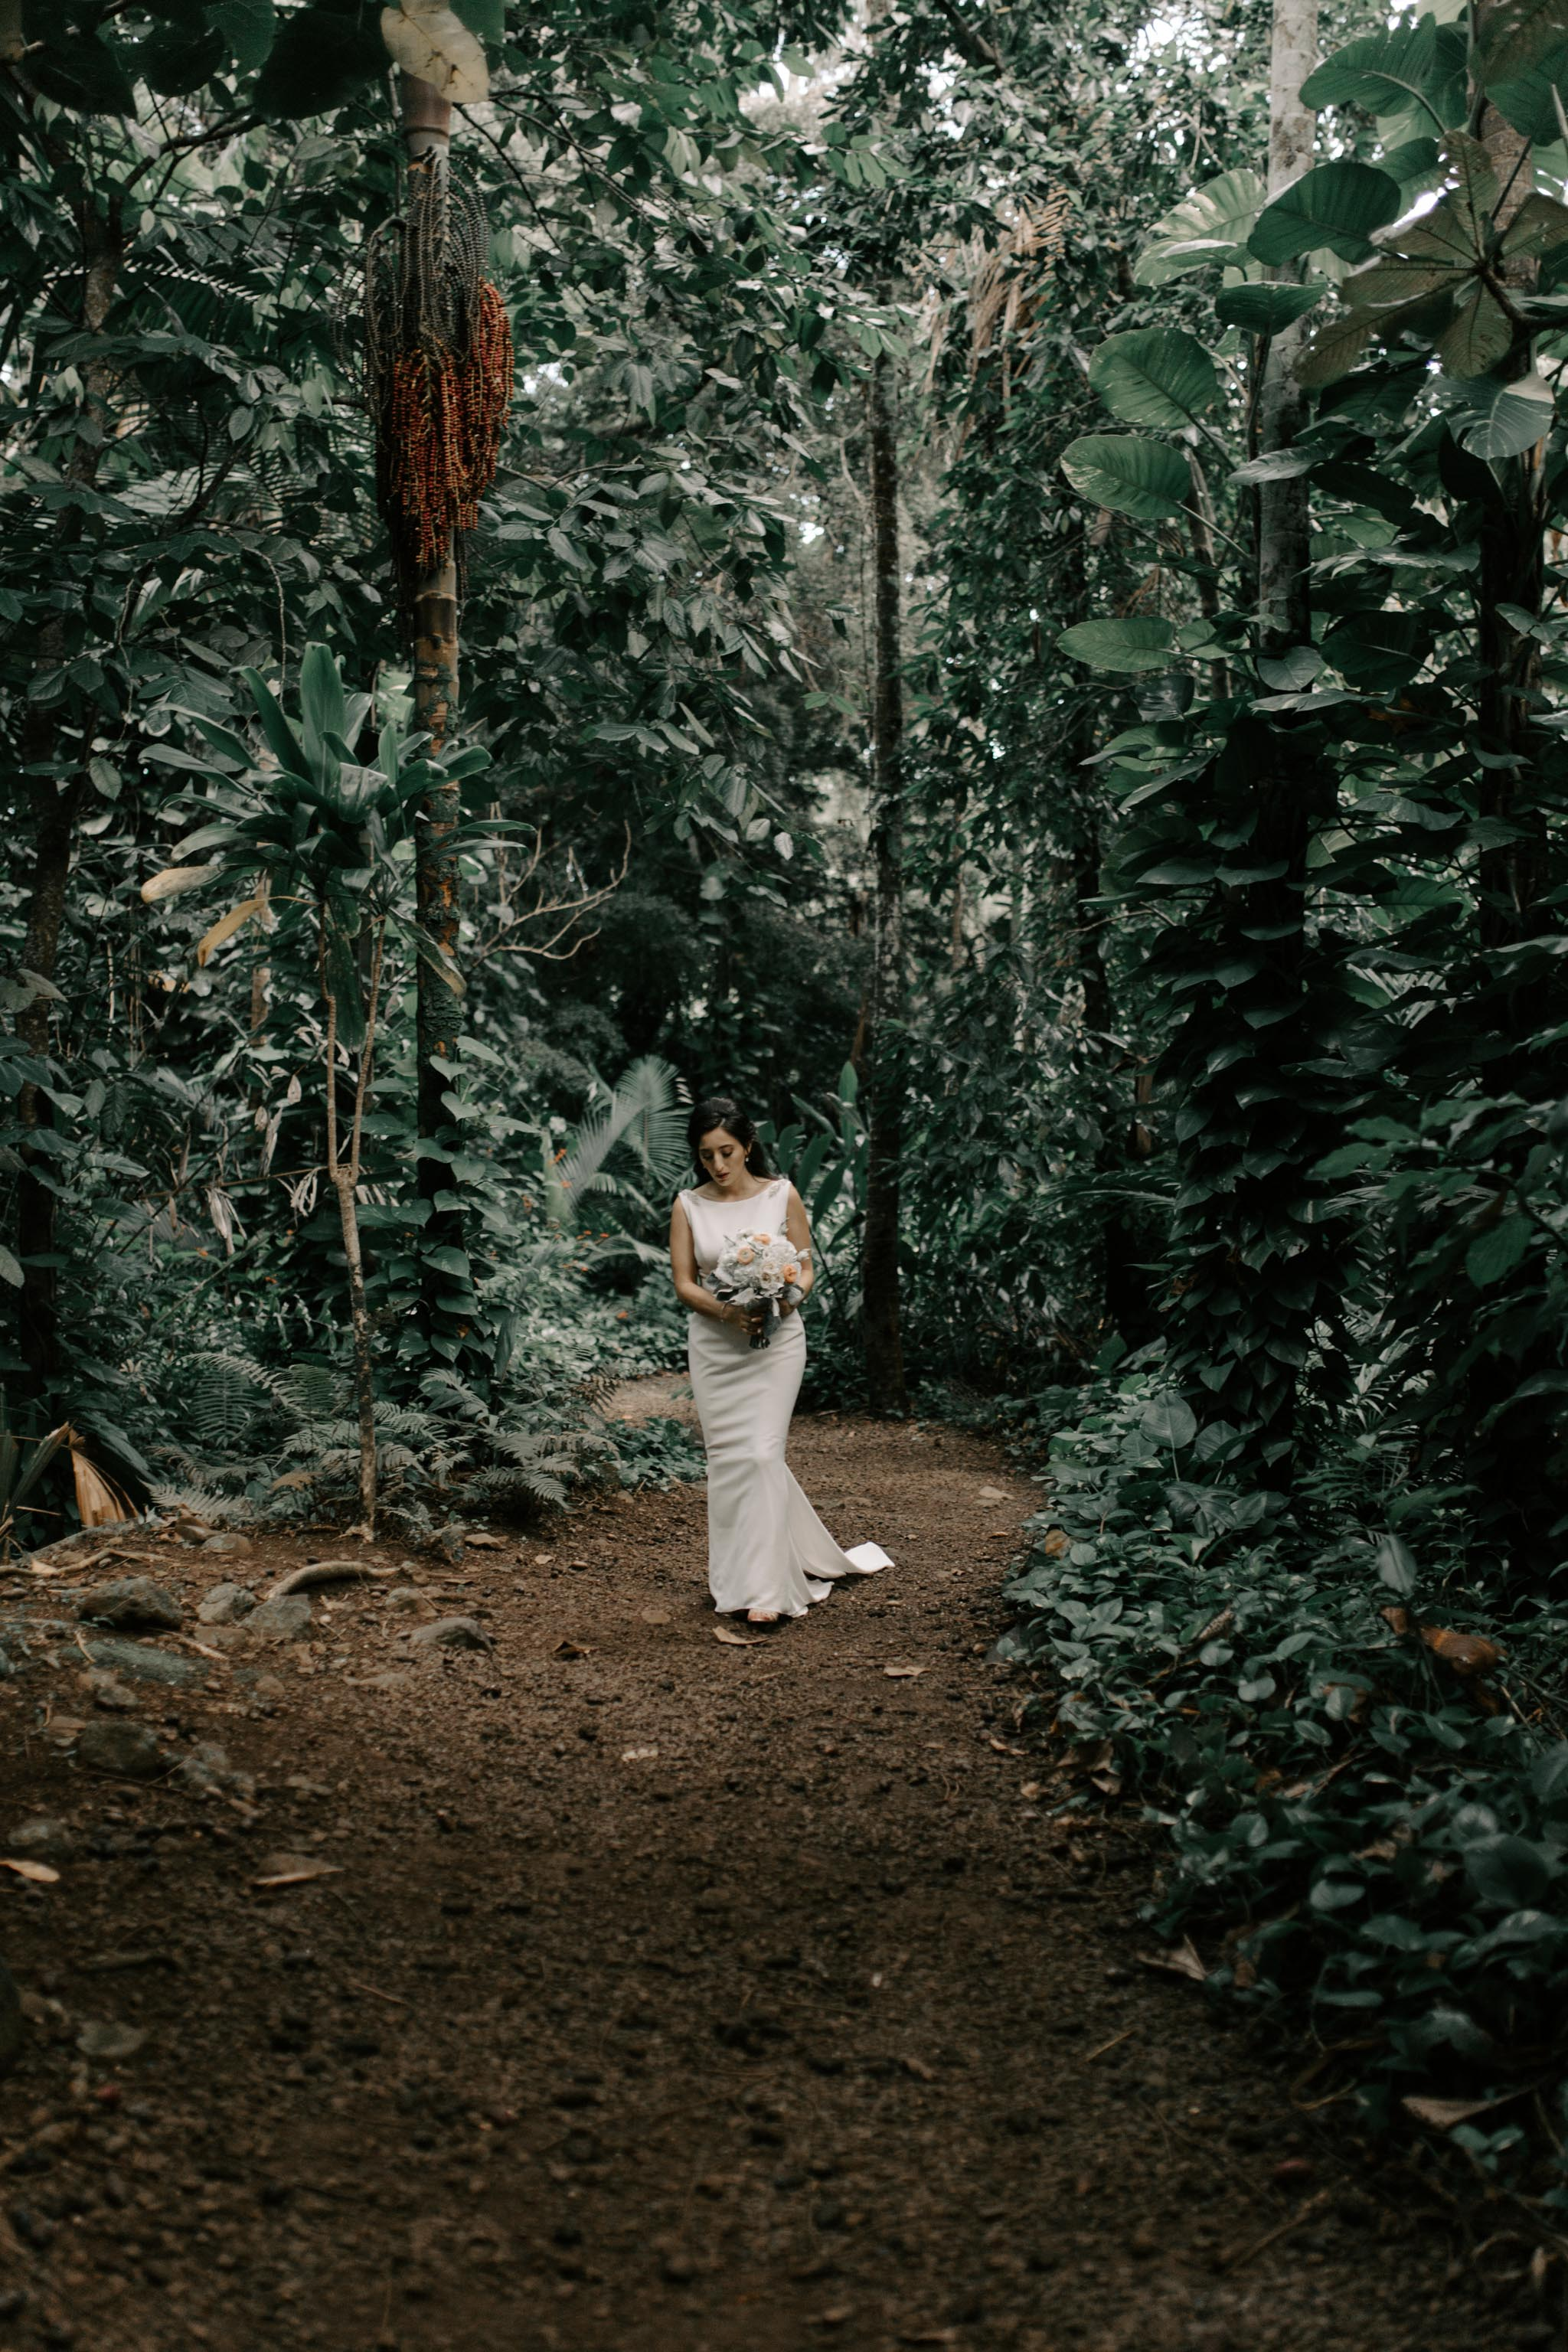 Waihulili Waterfall Wedding By Kauai Wedding Photographer Desiree Leilani